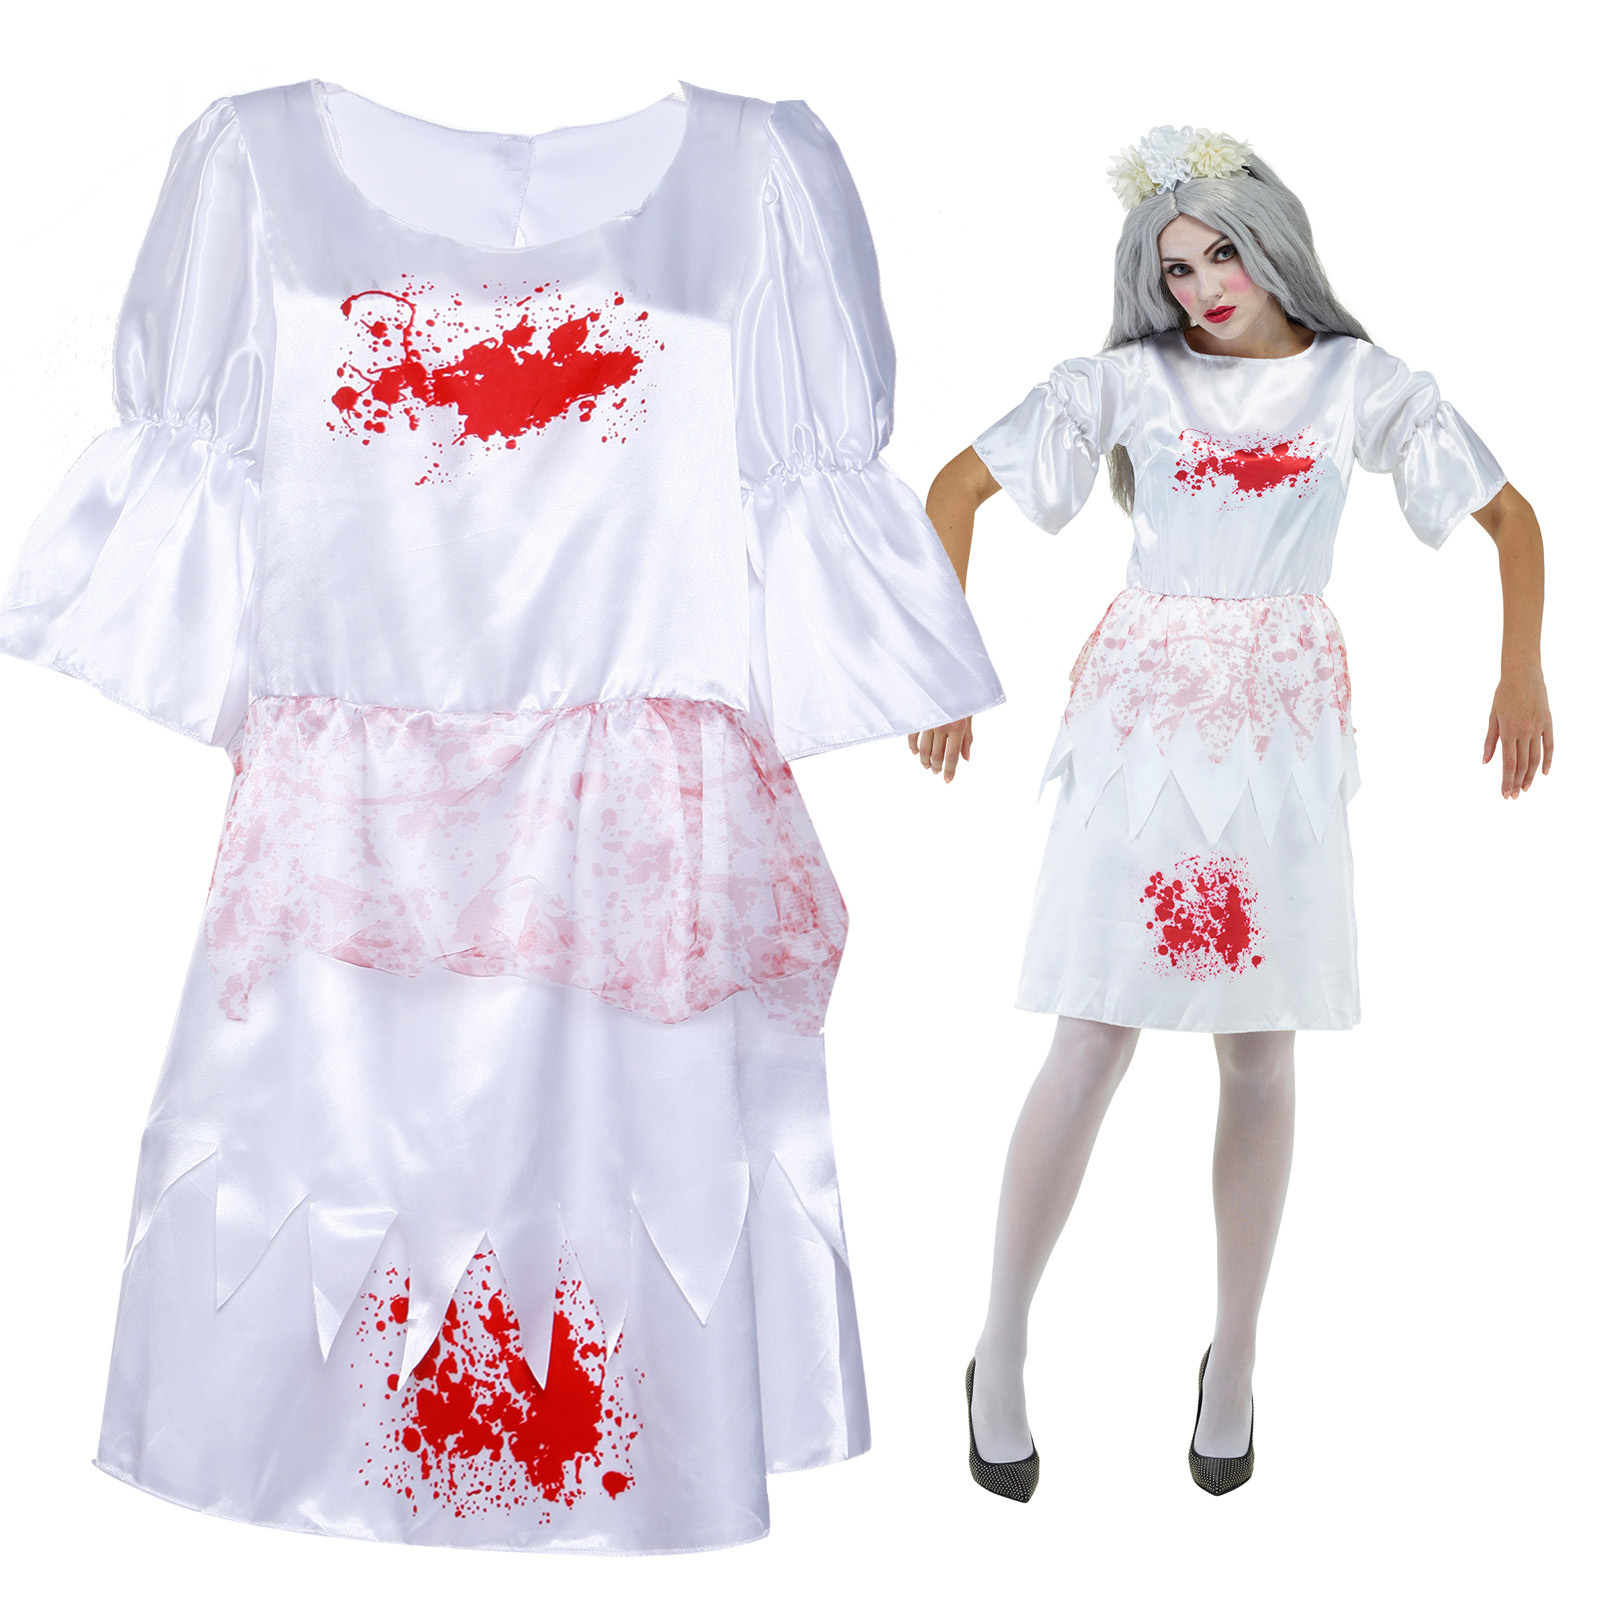 zombie kost m blutige lolita puppen dirndel kleid dienstm dchen halloween ebay. Black Bedroom Furniture Sets. Home Design Ideas